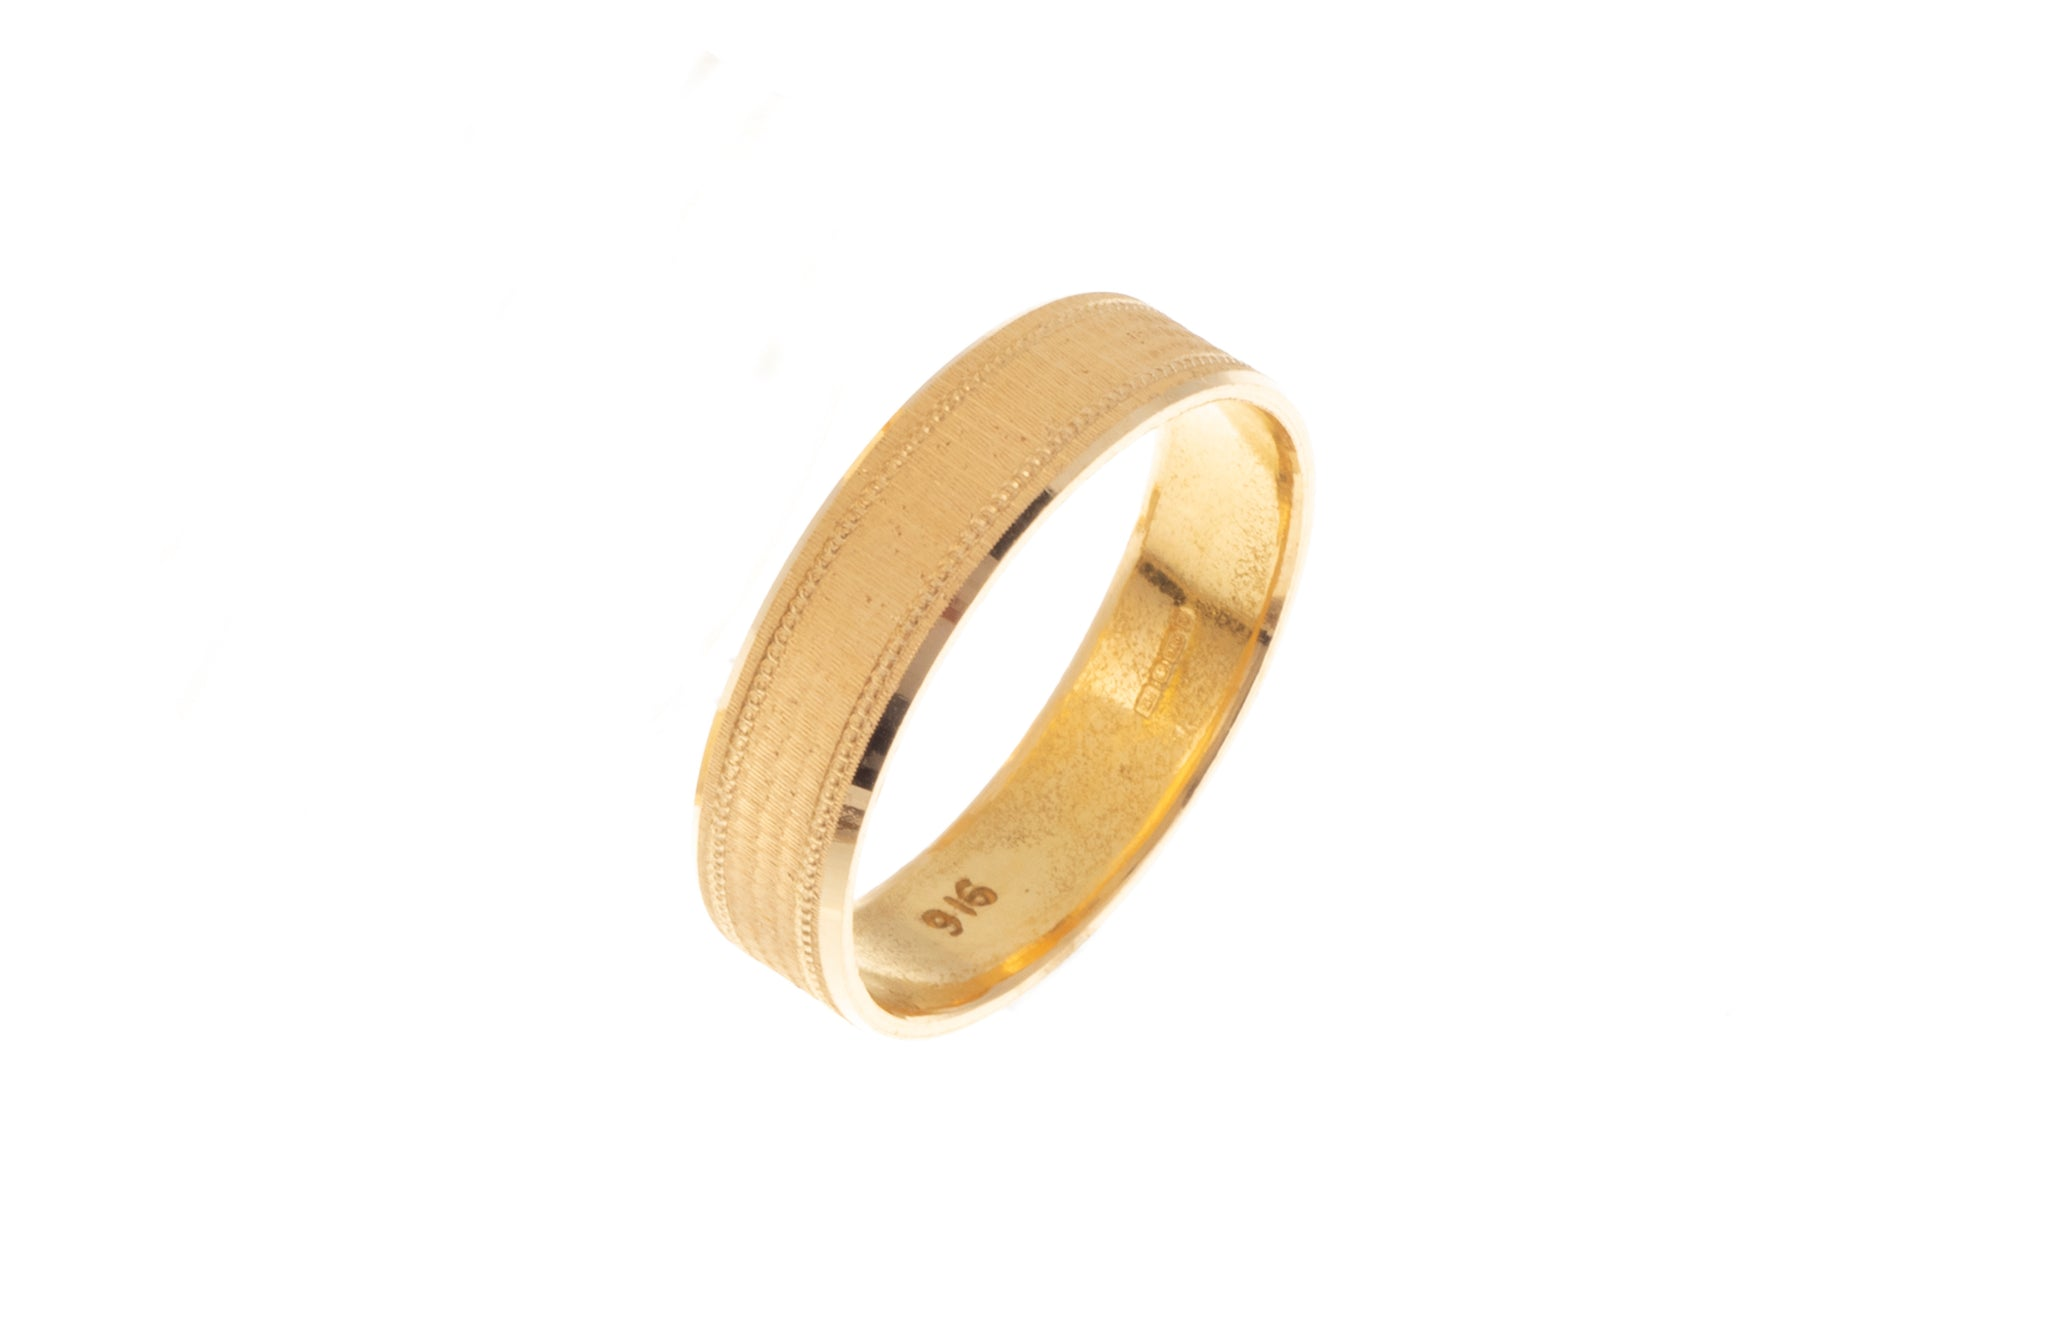 22ct Gold Wedding Band with Diamond Cut Design LR/GR-7360